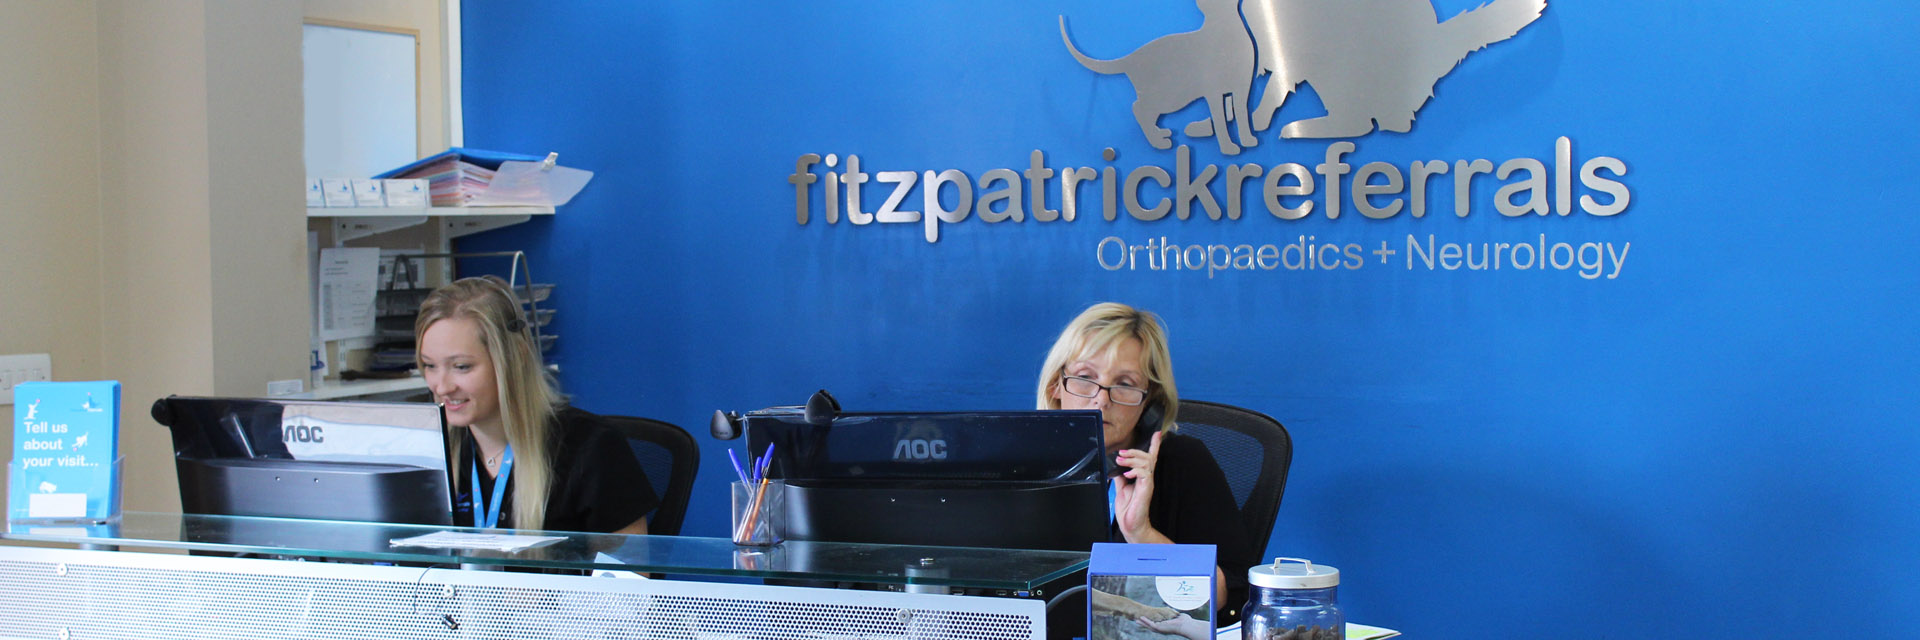 Receptionists at Fitzpatrick Referrals Orthopaedics and Neurology